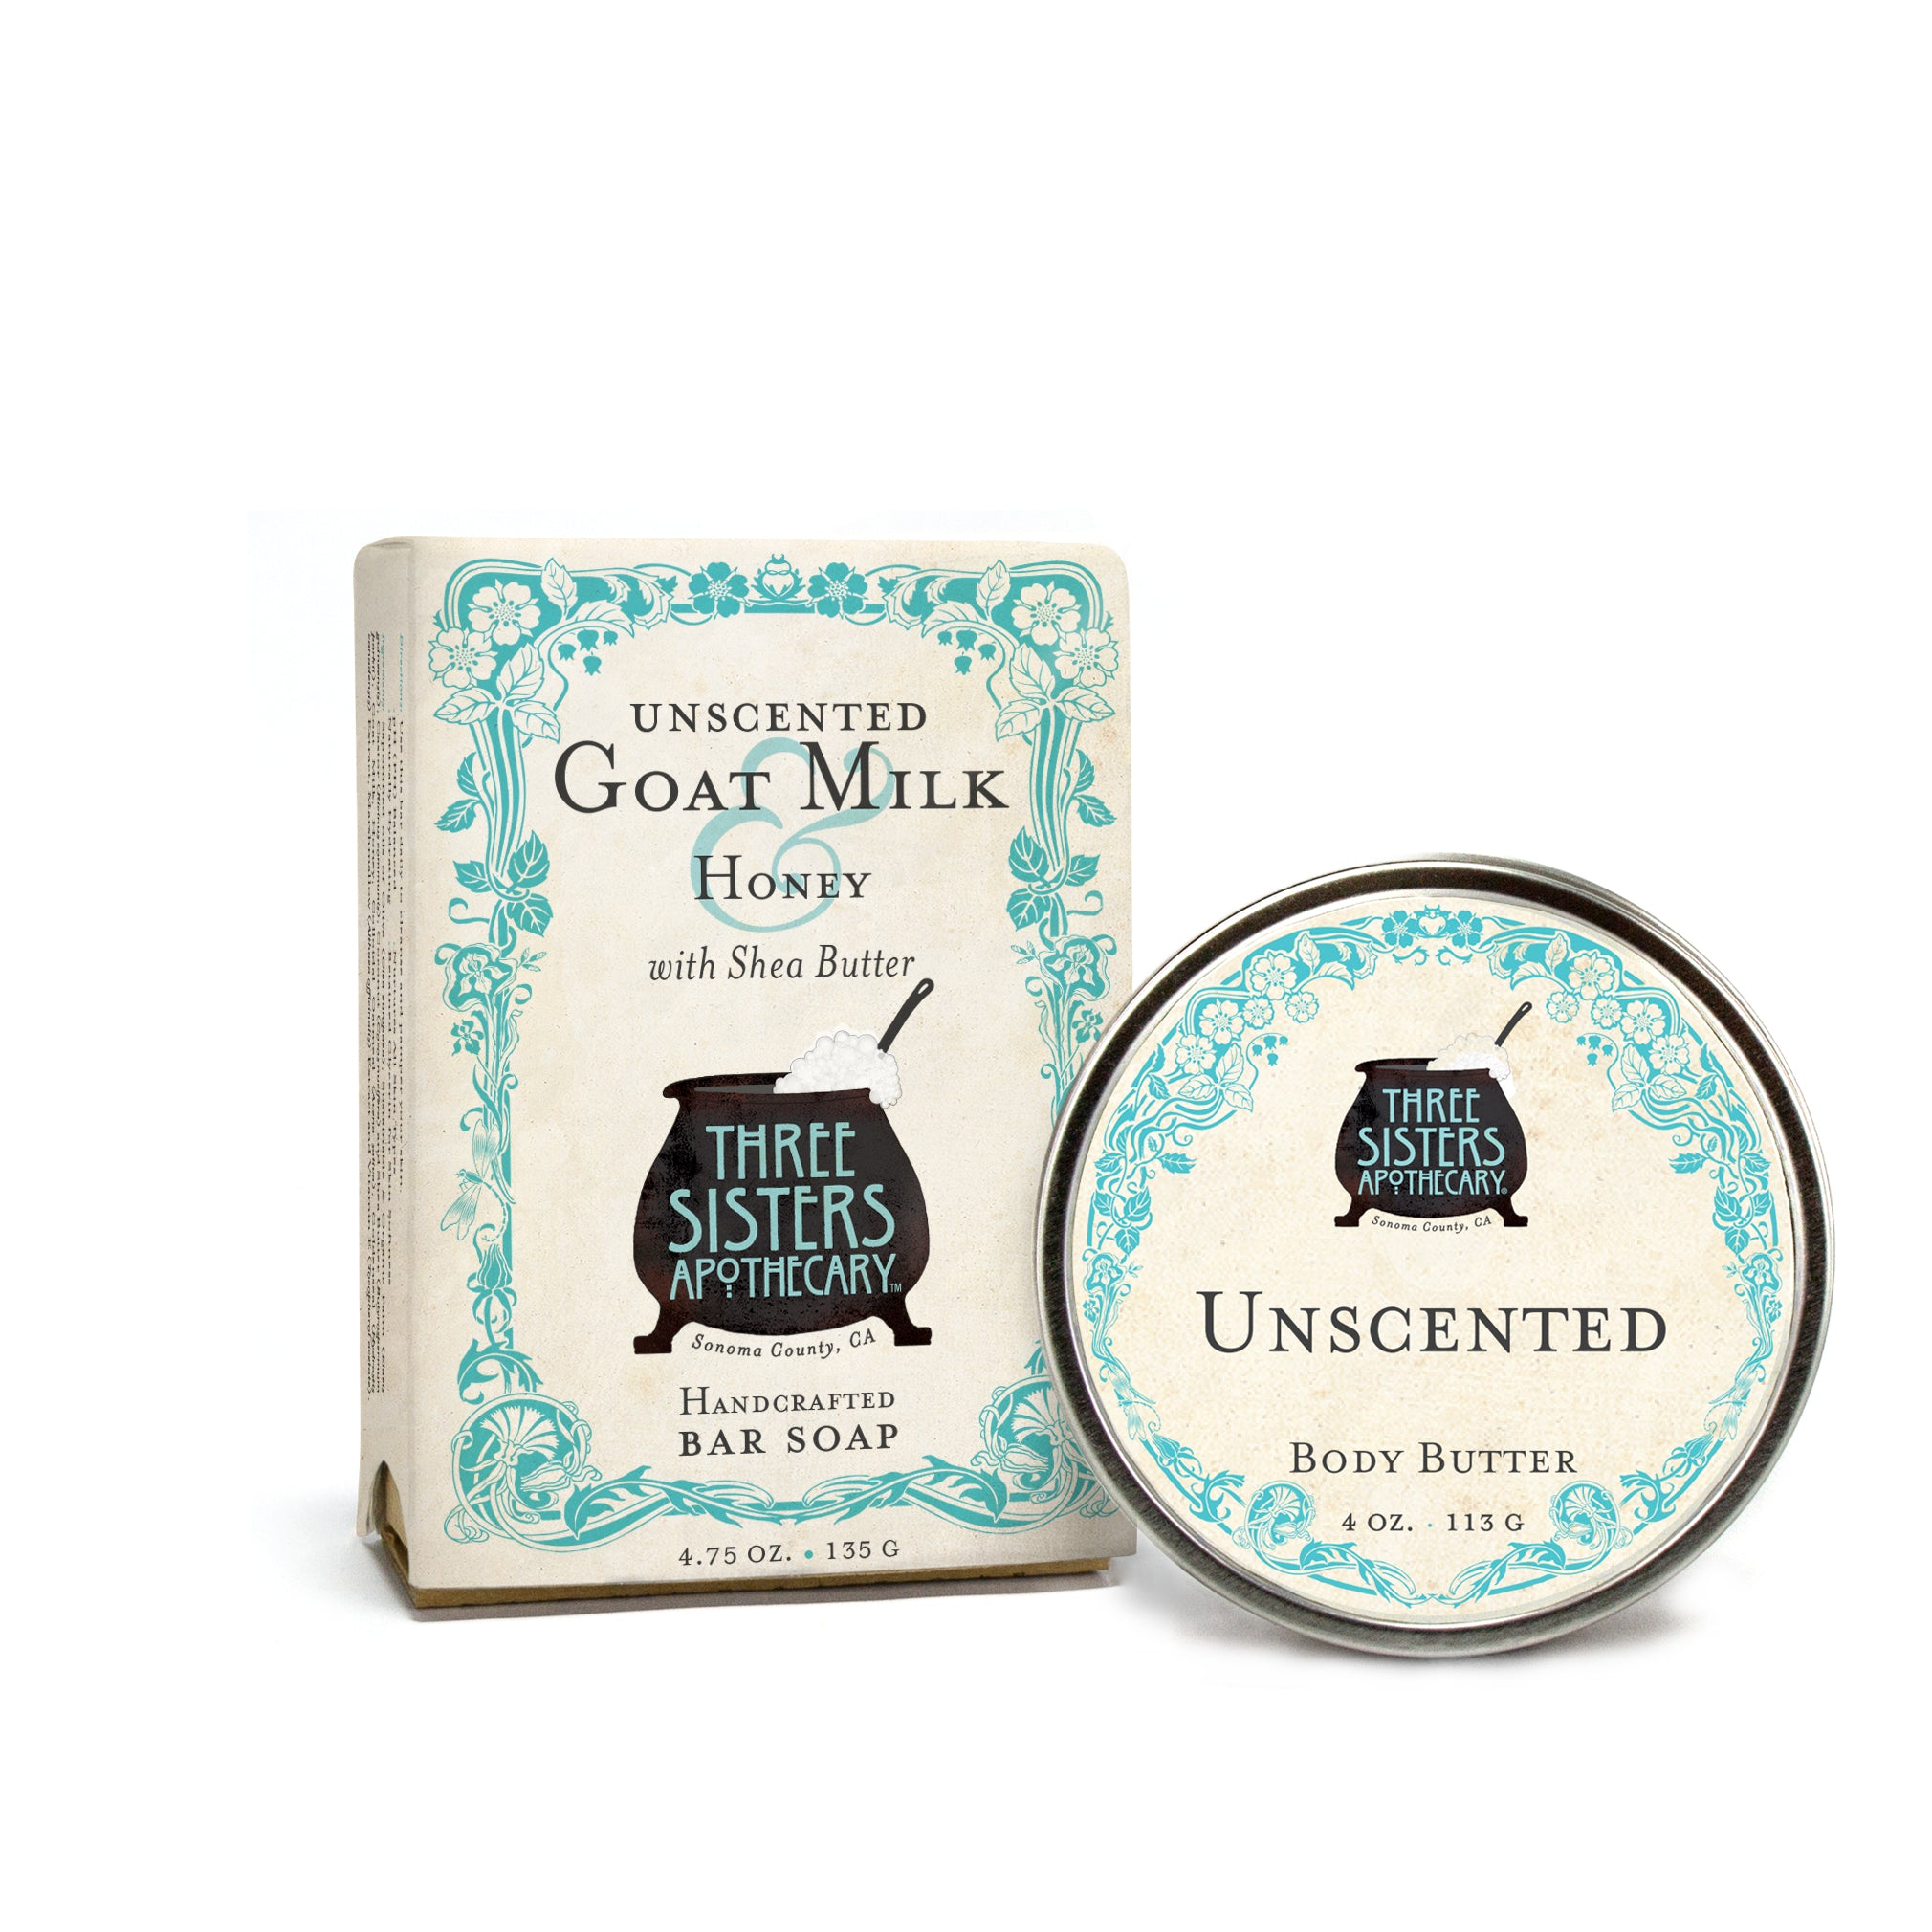 Unscented Goat Milk & Honey Bar Soap